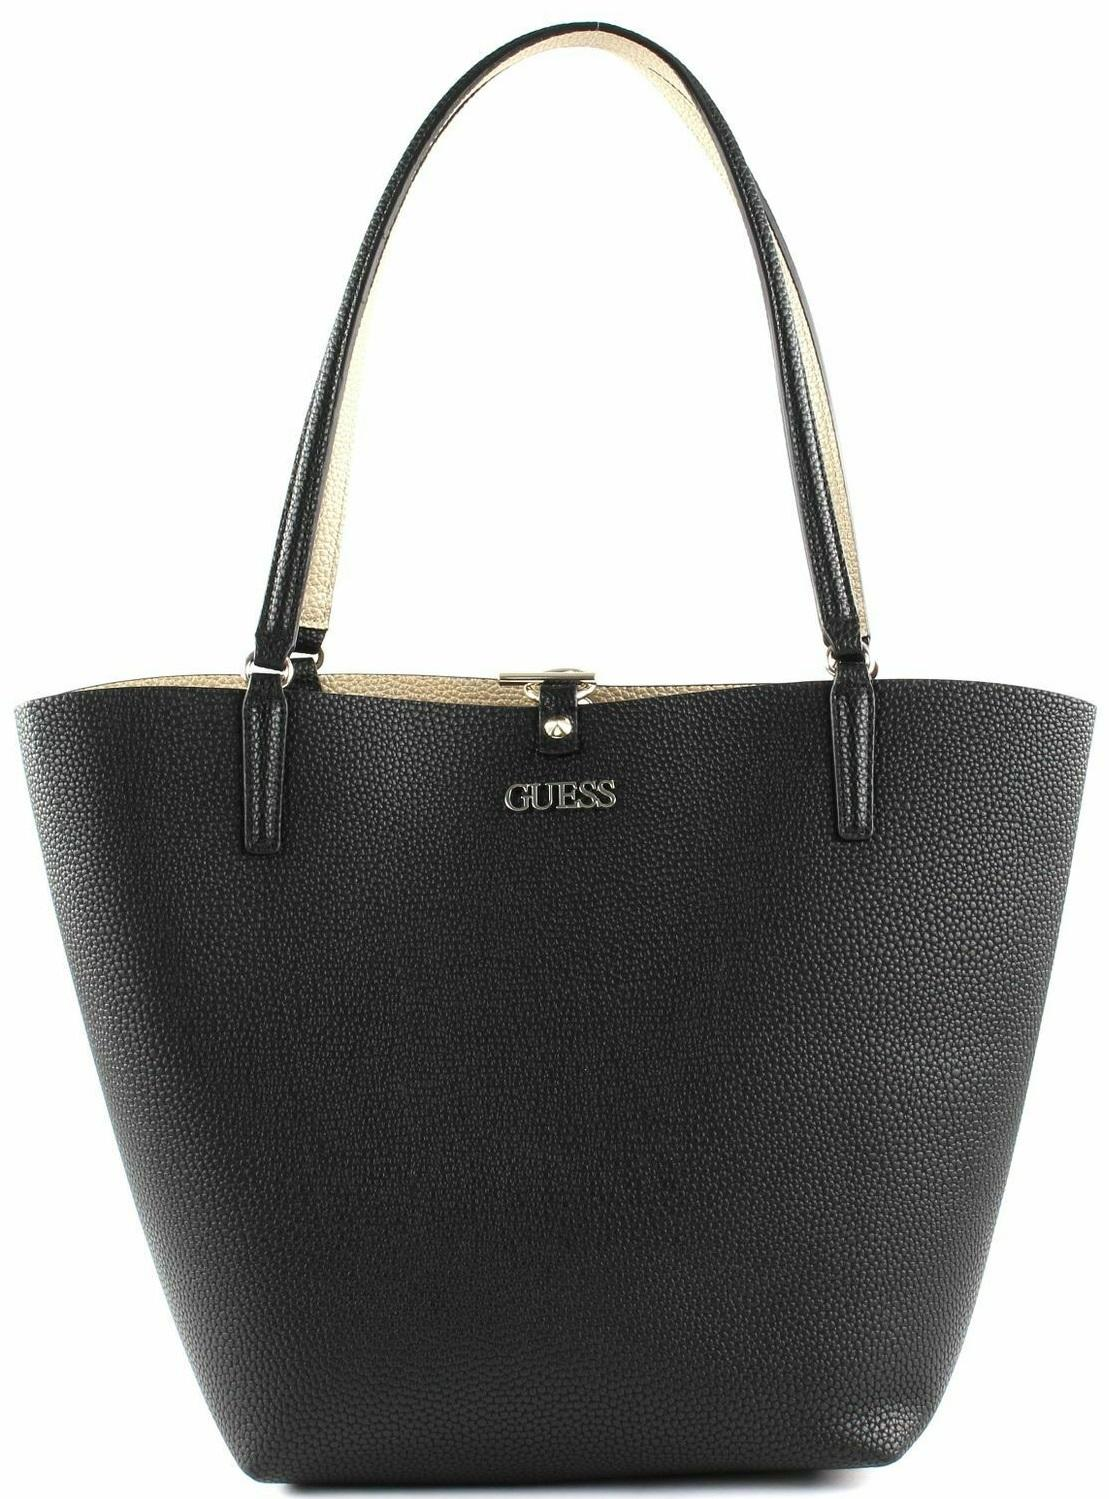 Guess shopping bag Alby